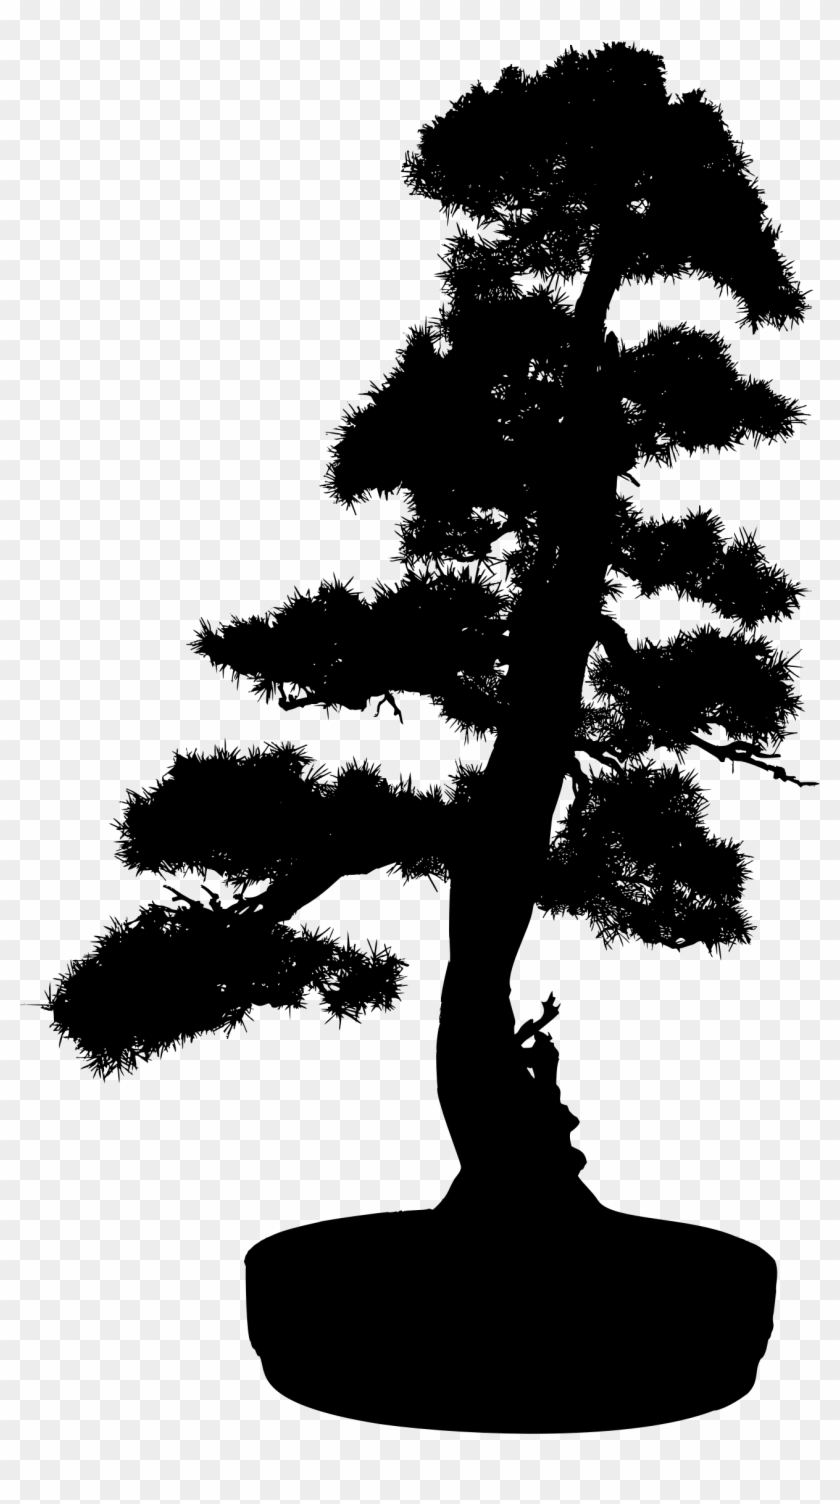 Big Image - Bonsai Tree Silhouette Png #803674